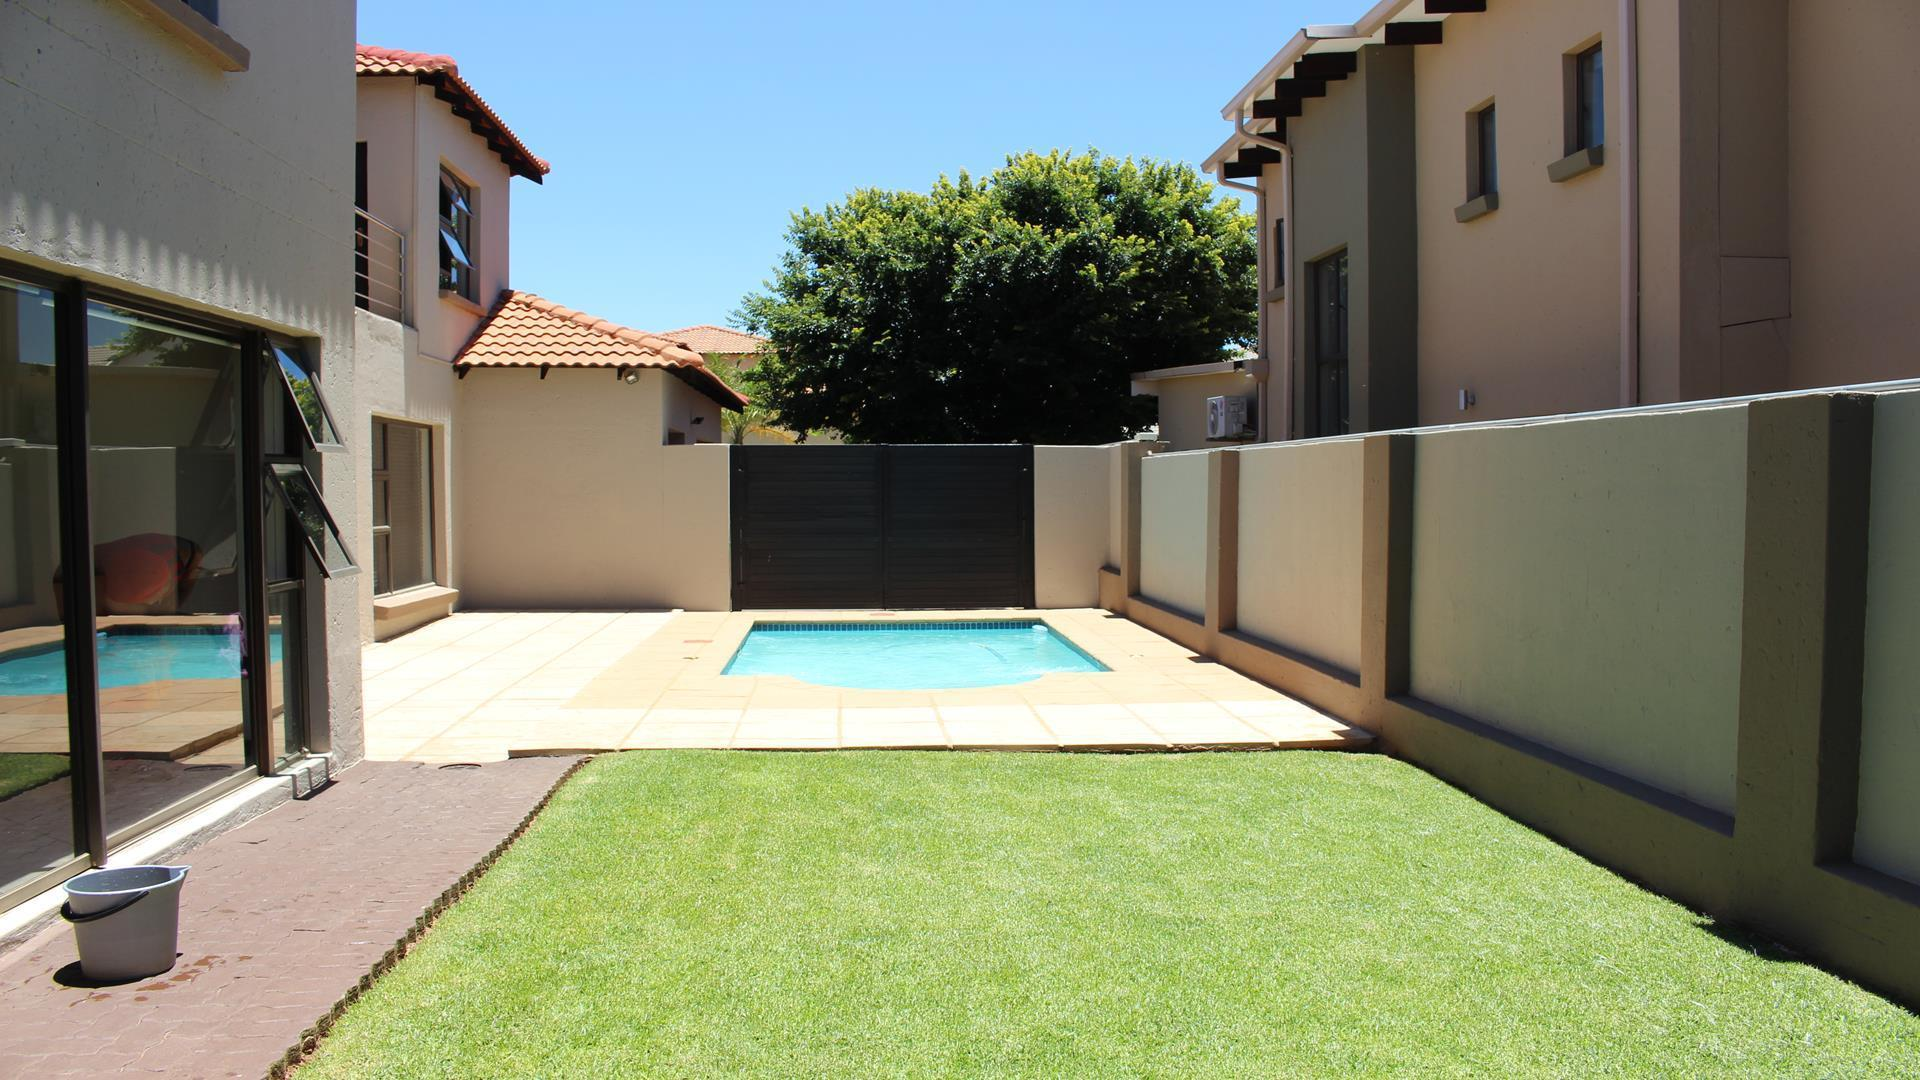 Raslouw Manor property for sale. Ref No: 13435098. Picture no 35